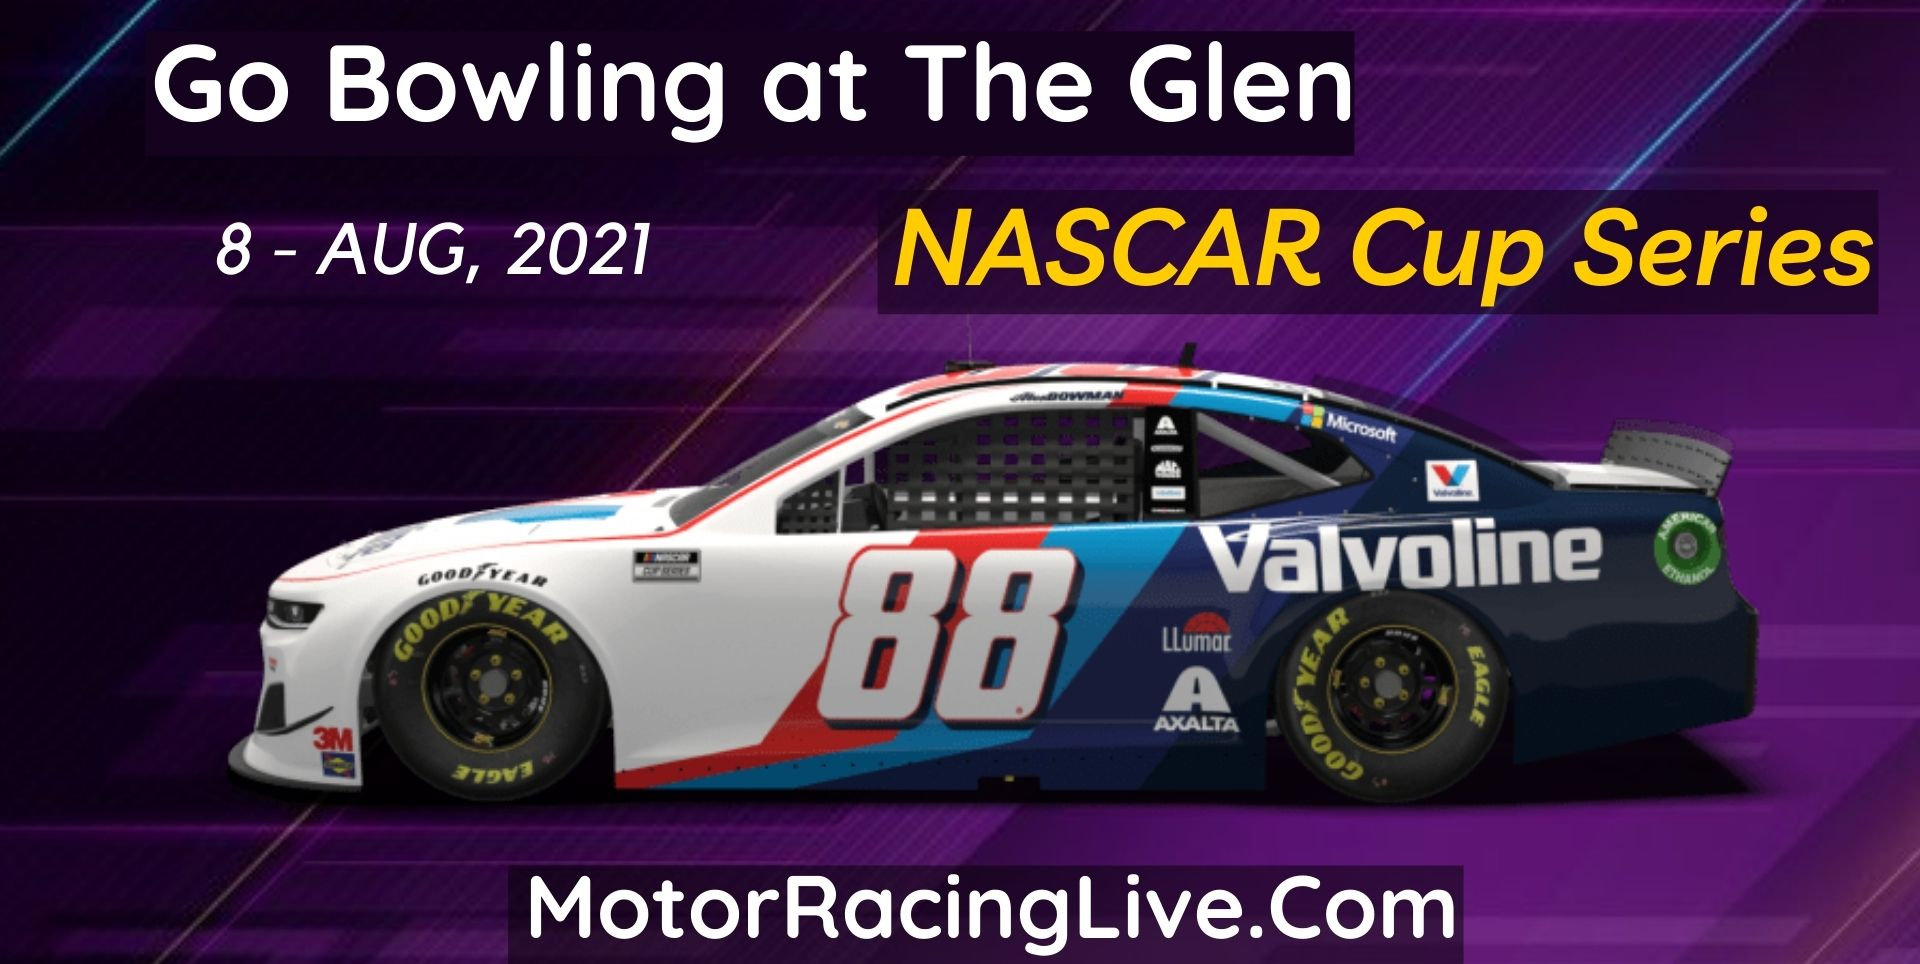 Go Bowling At The Glen Live Stream 2021: NASCAR Cup Series